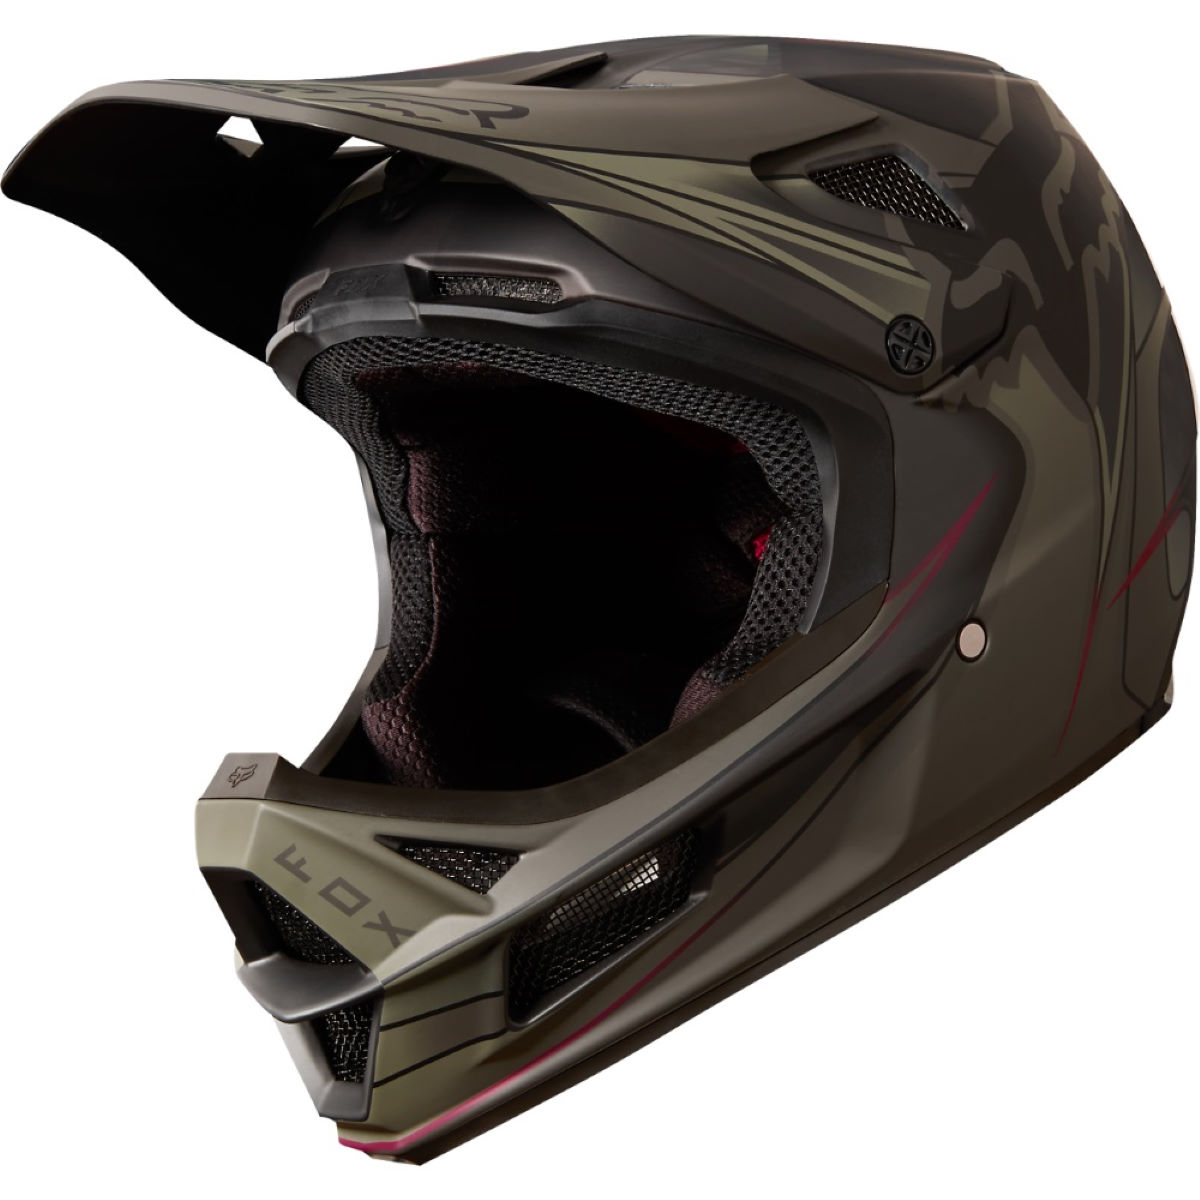 Casco Fox Racing Rampage Pro Carbon Kustom - Cascos integrales